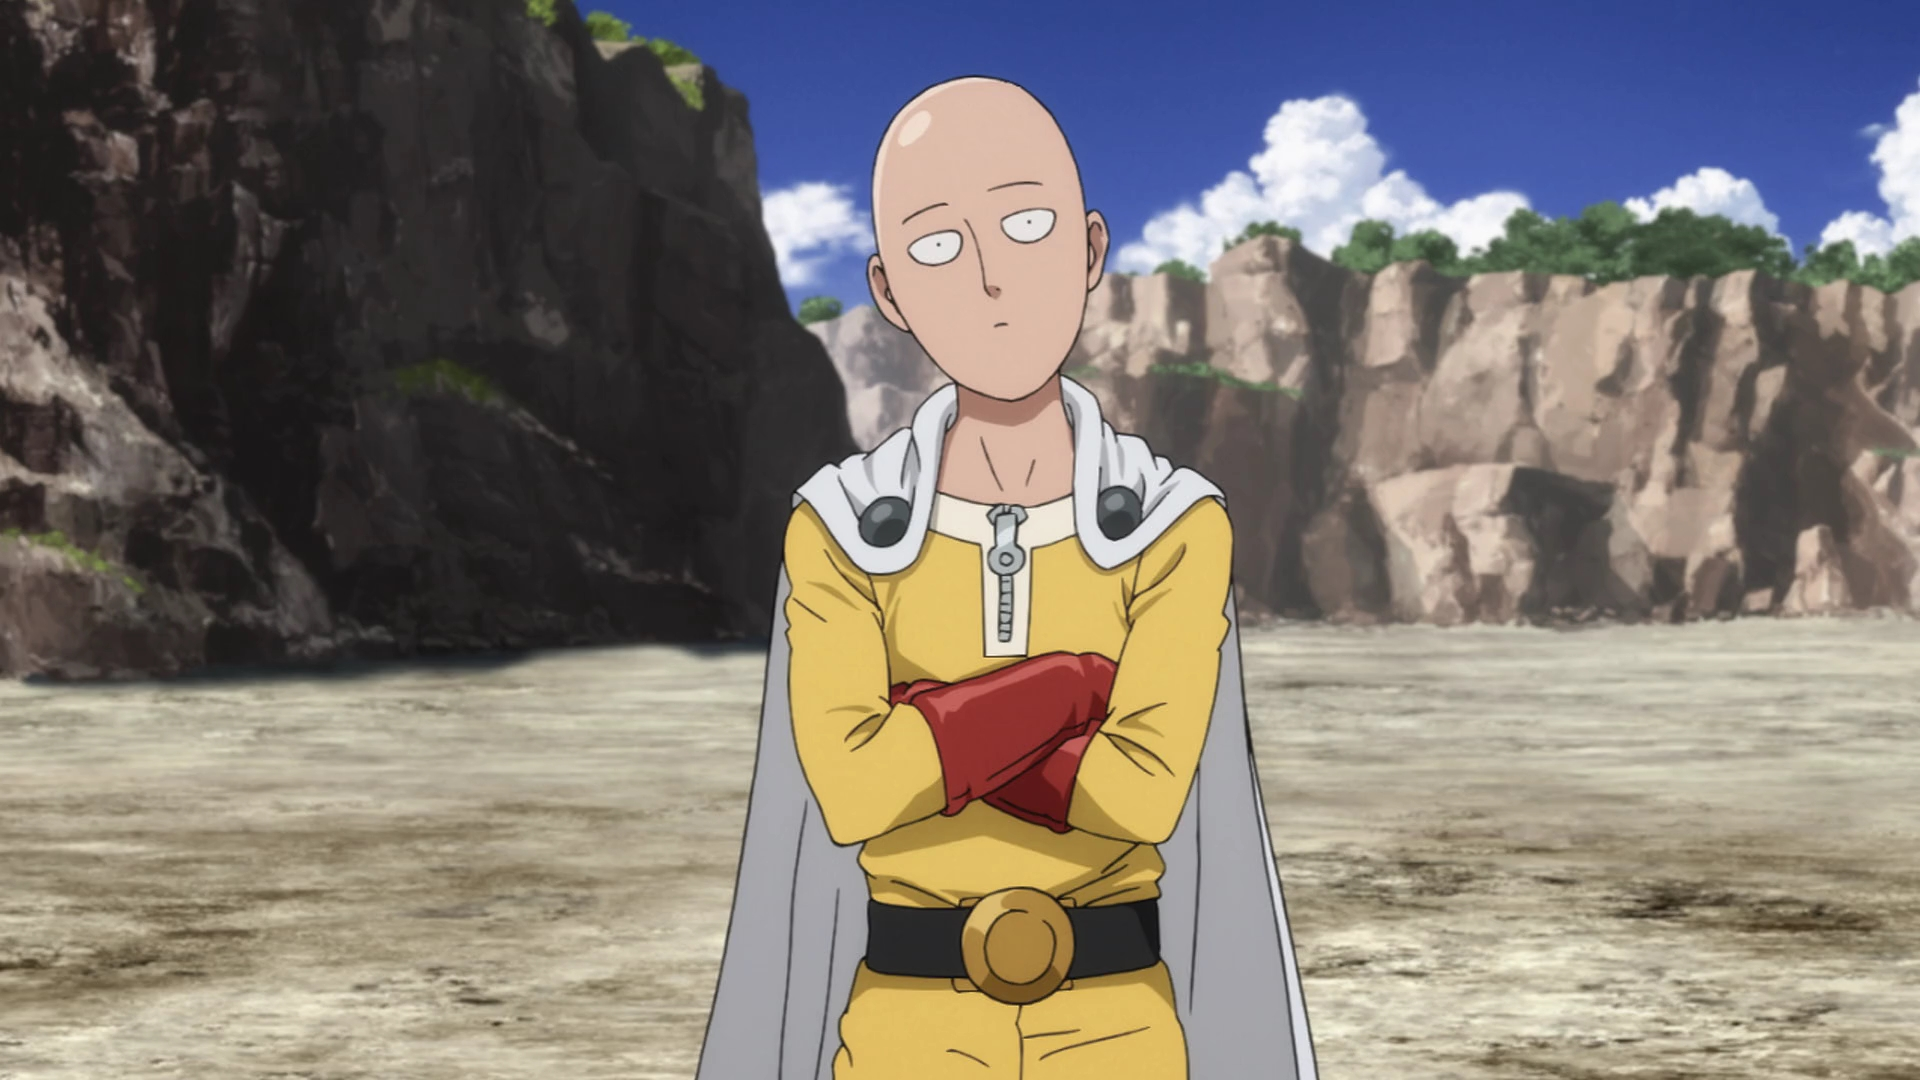 The Upsidedown Heroism of 'One Punch Man' - Christ and Pop ...